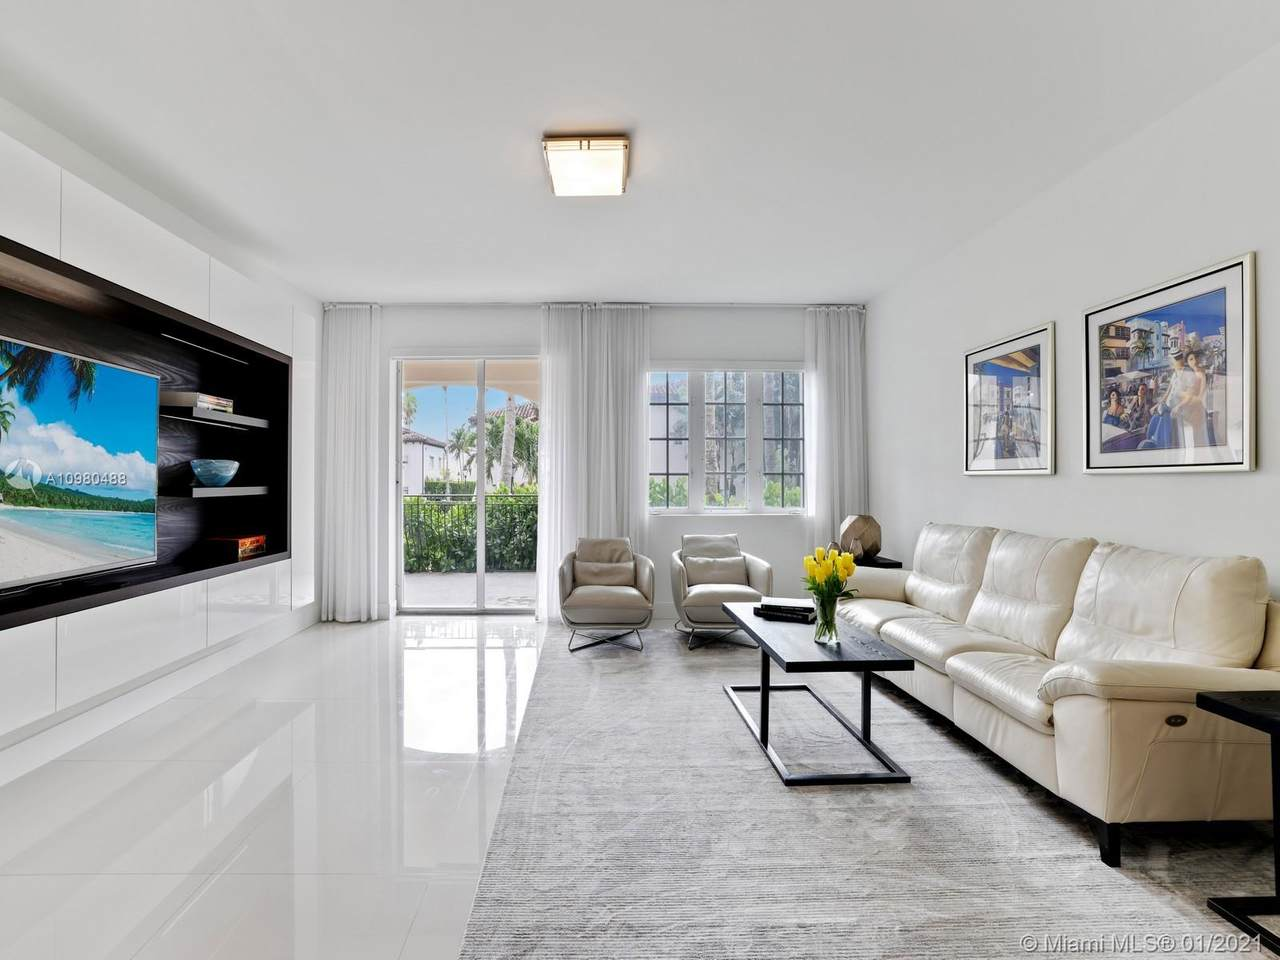 19113 Fisher Island Dr - Photo 1